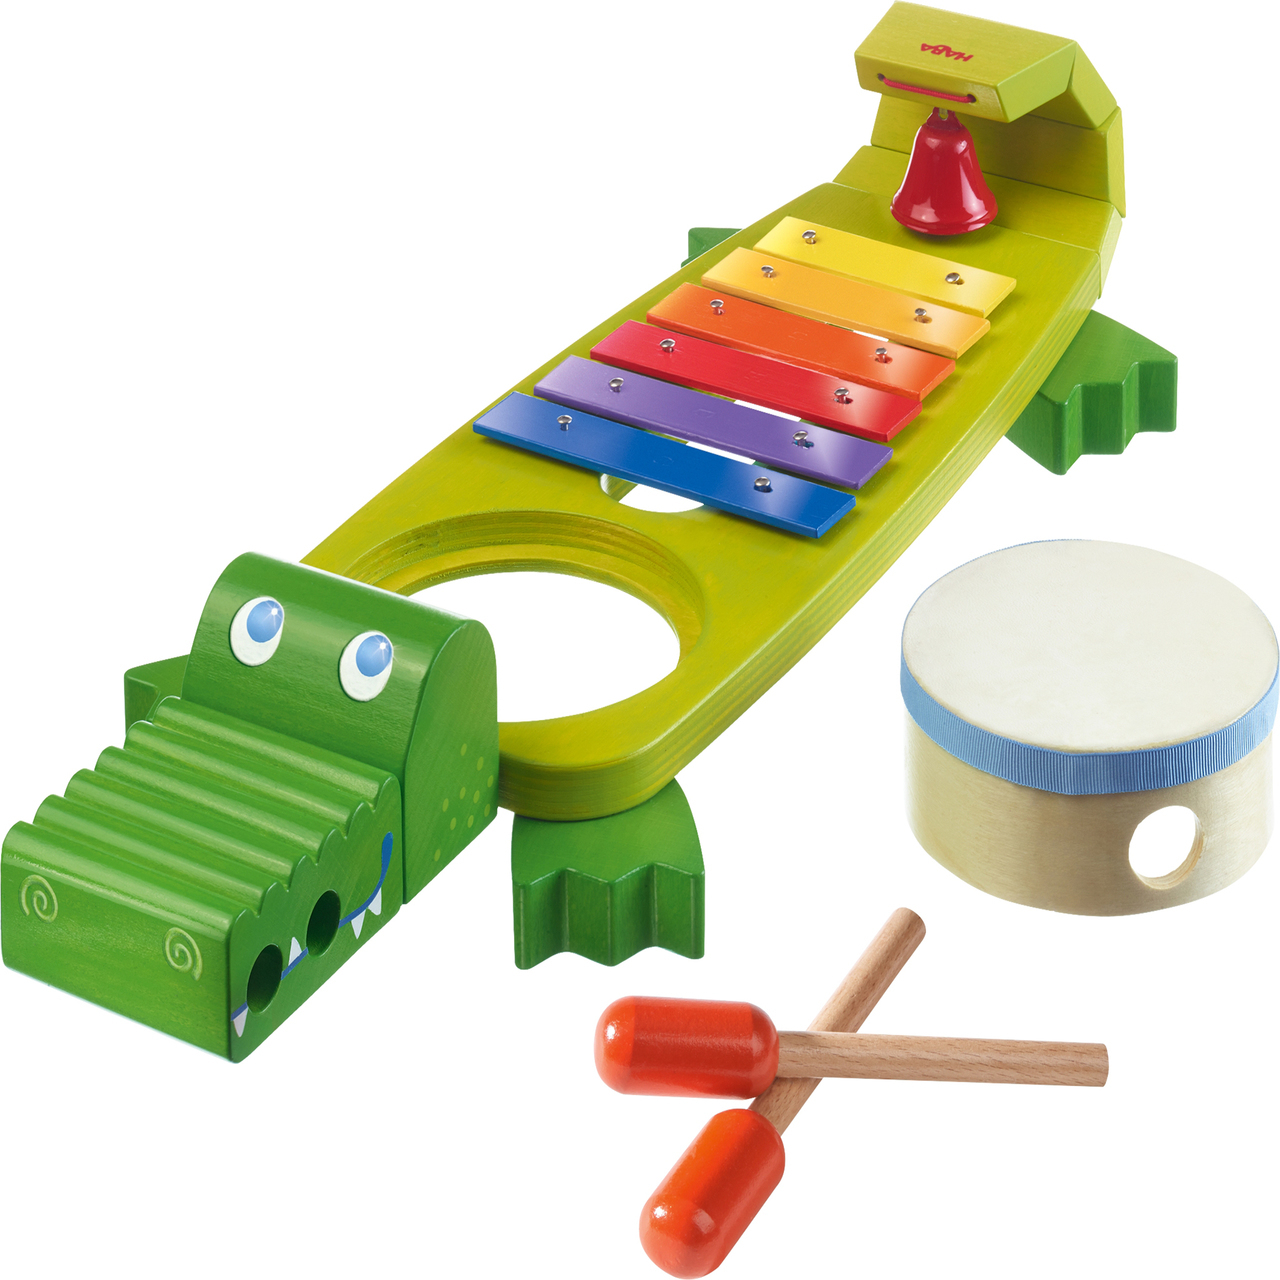 Haba Symphony Croc - WoodenToys.com